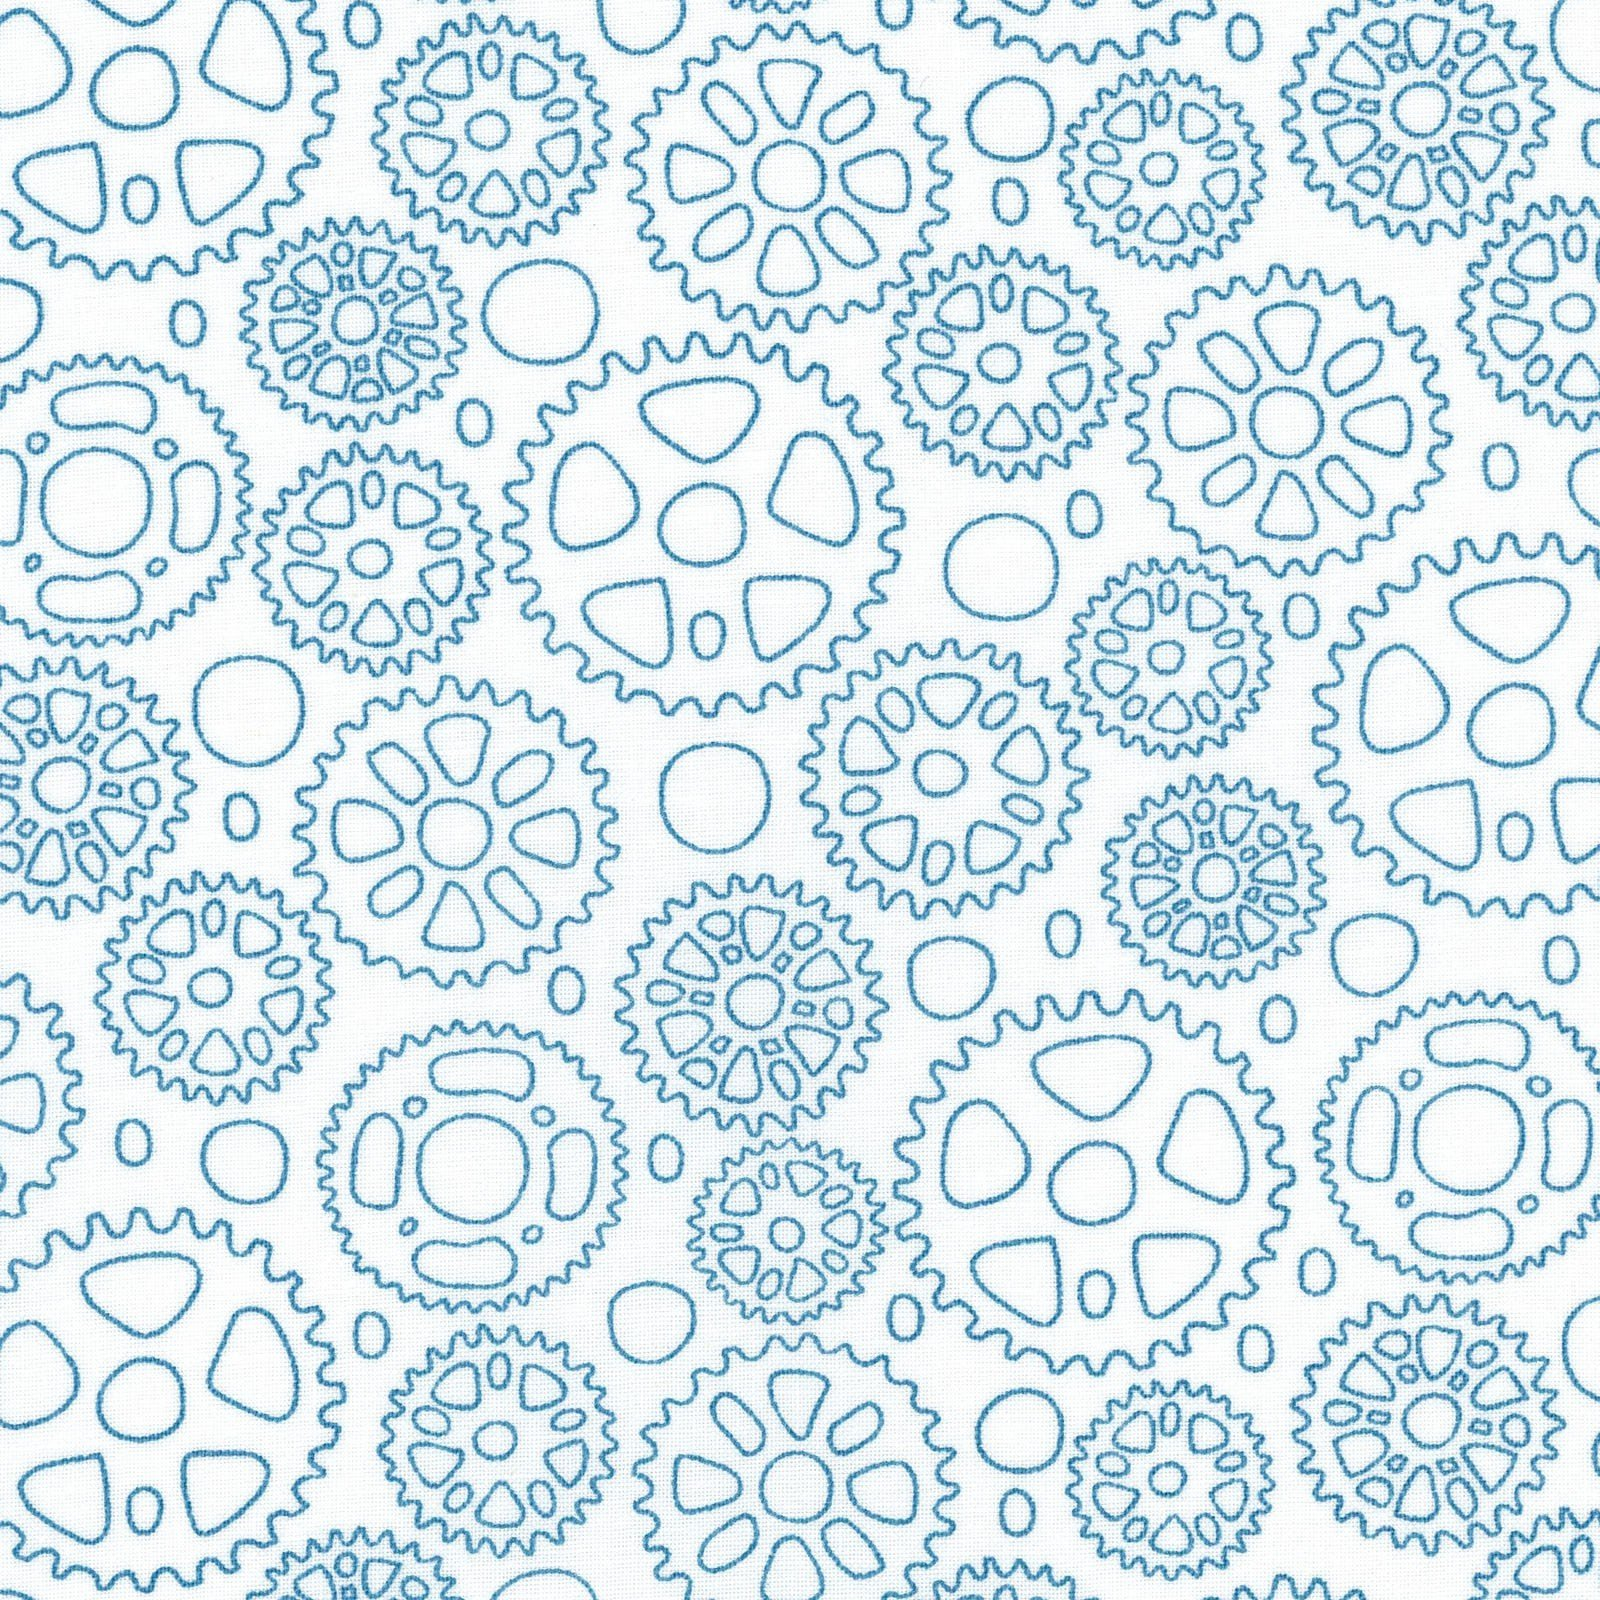 Cycles of Life Sprockets Blue